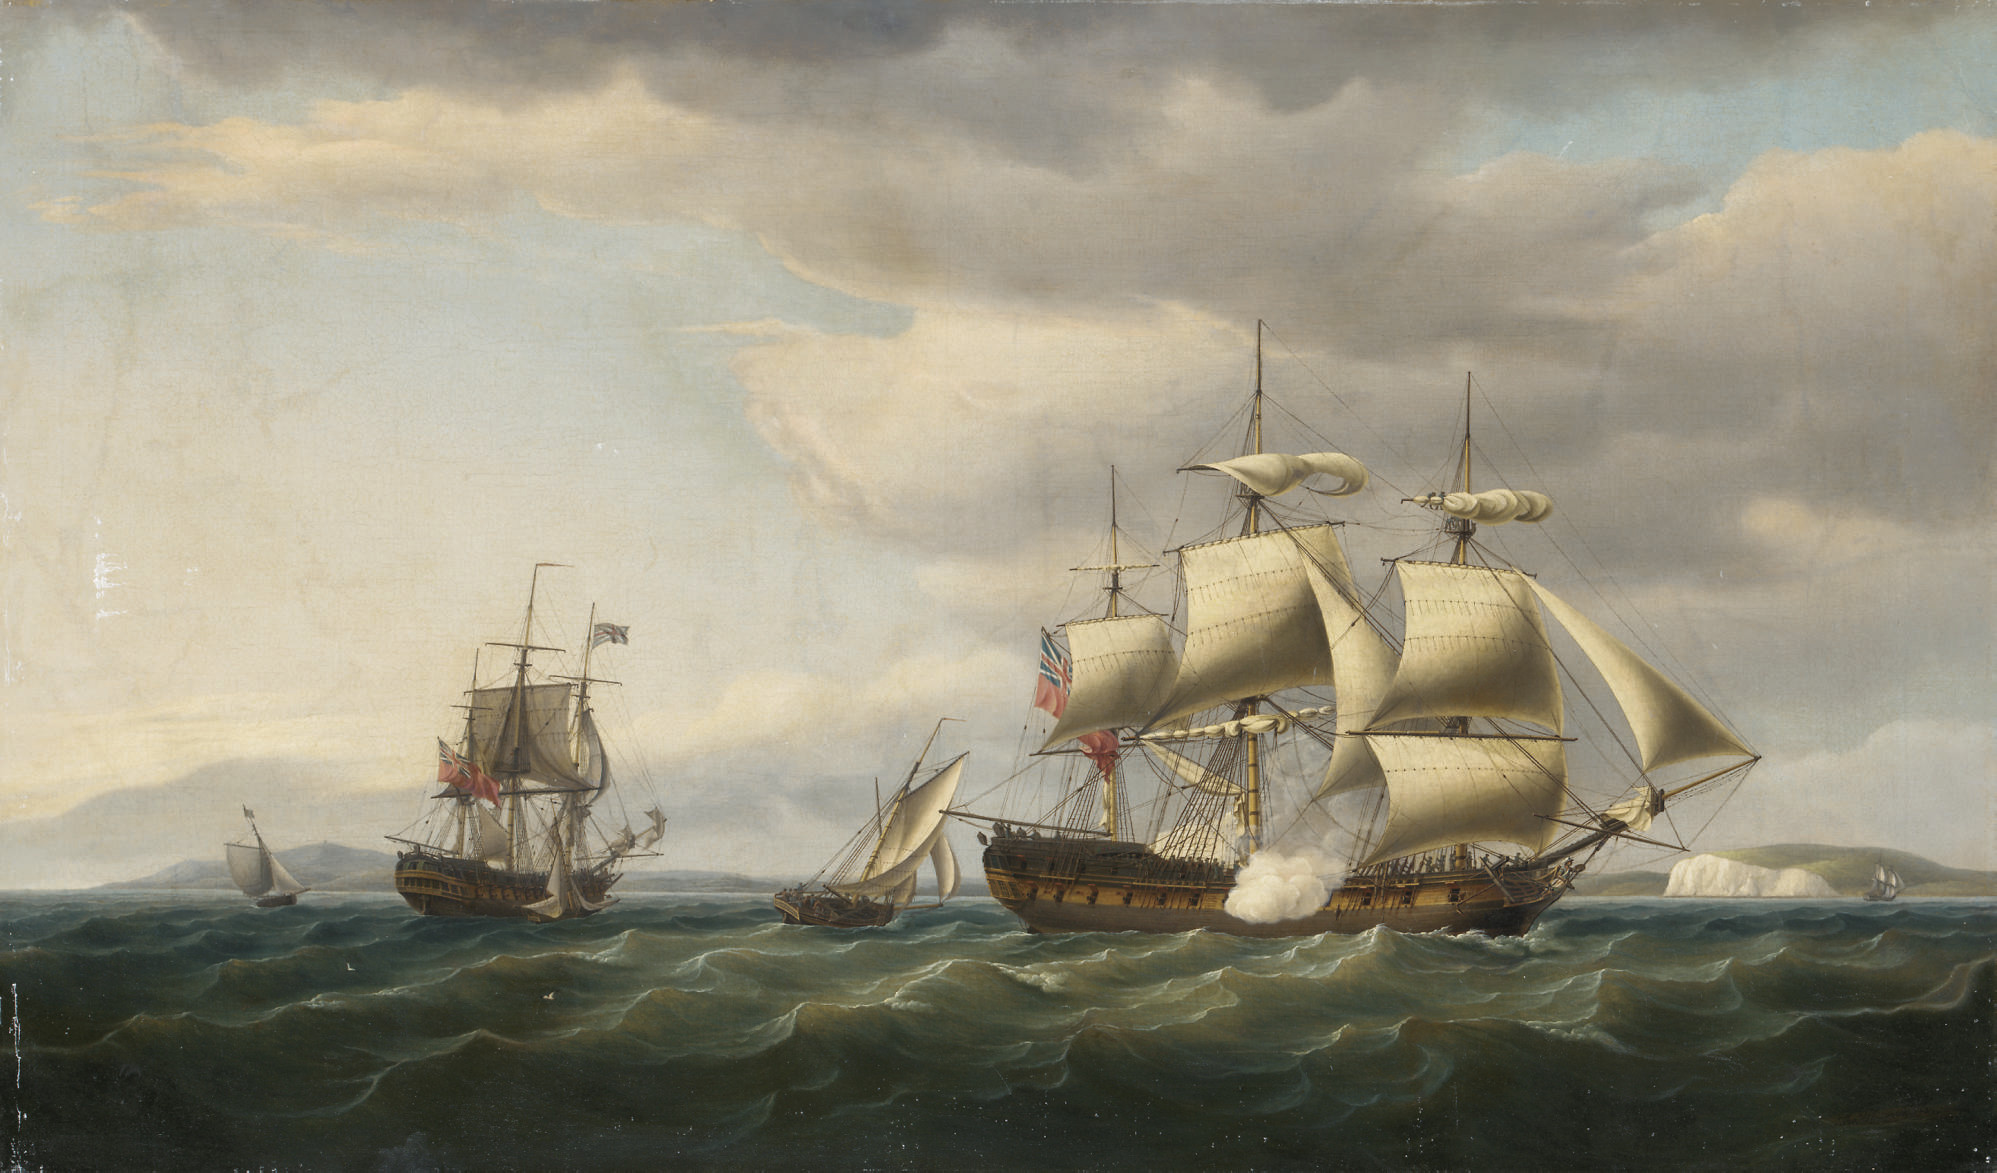 The East Indiaman Rodney in two positions off the English coast, firing a salute to mark her safe return from Bengal in August, 1788